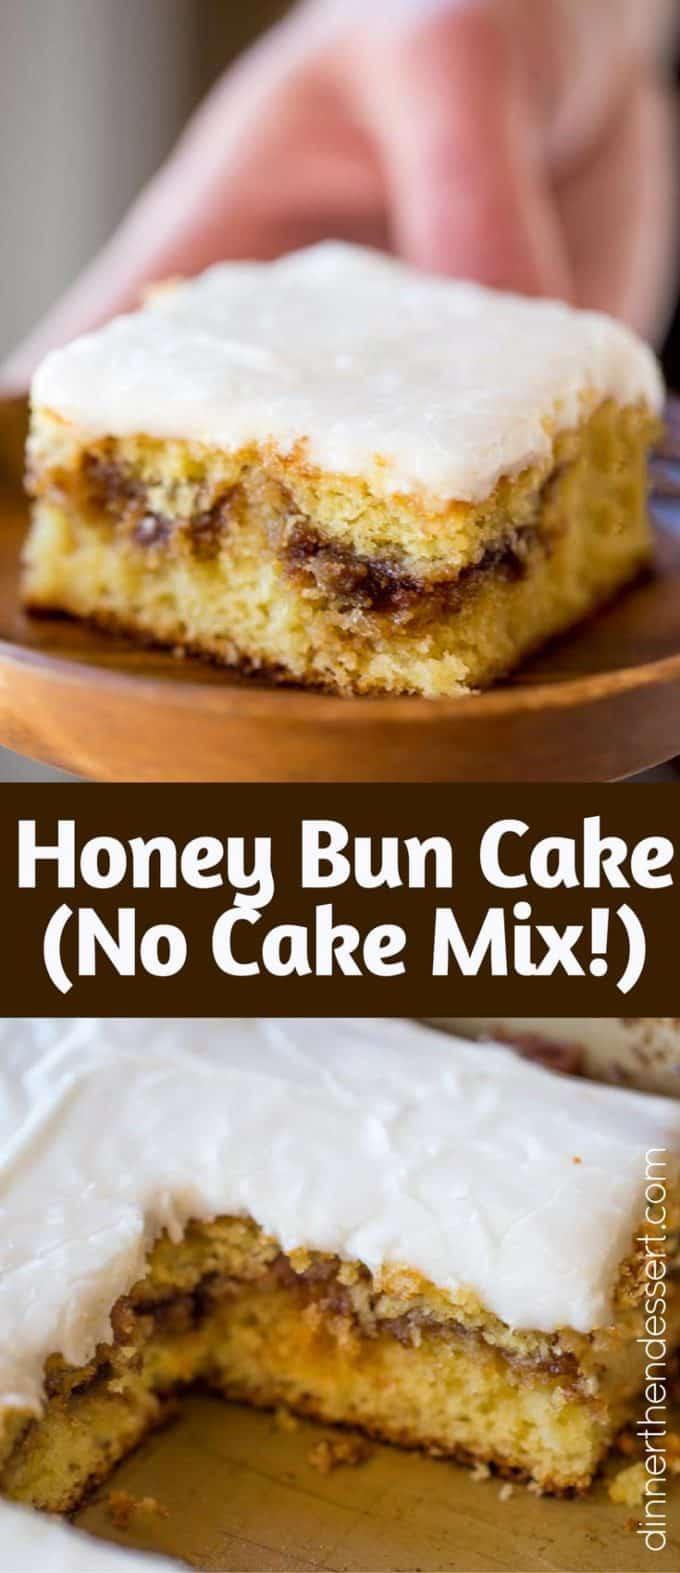 Easy Honey Bun Cake Without Sour Cream